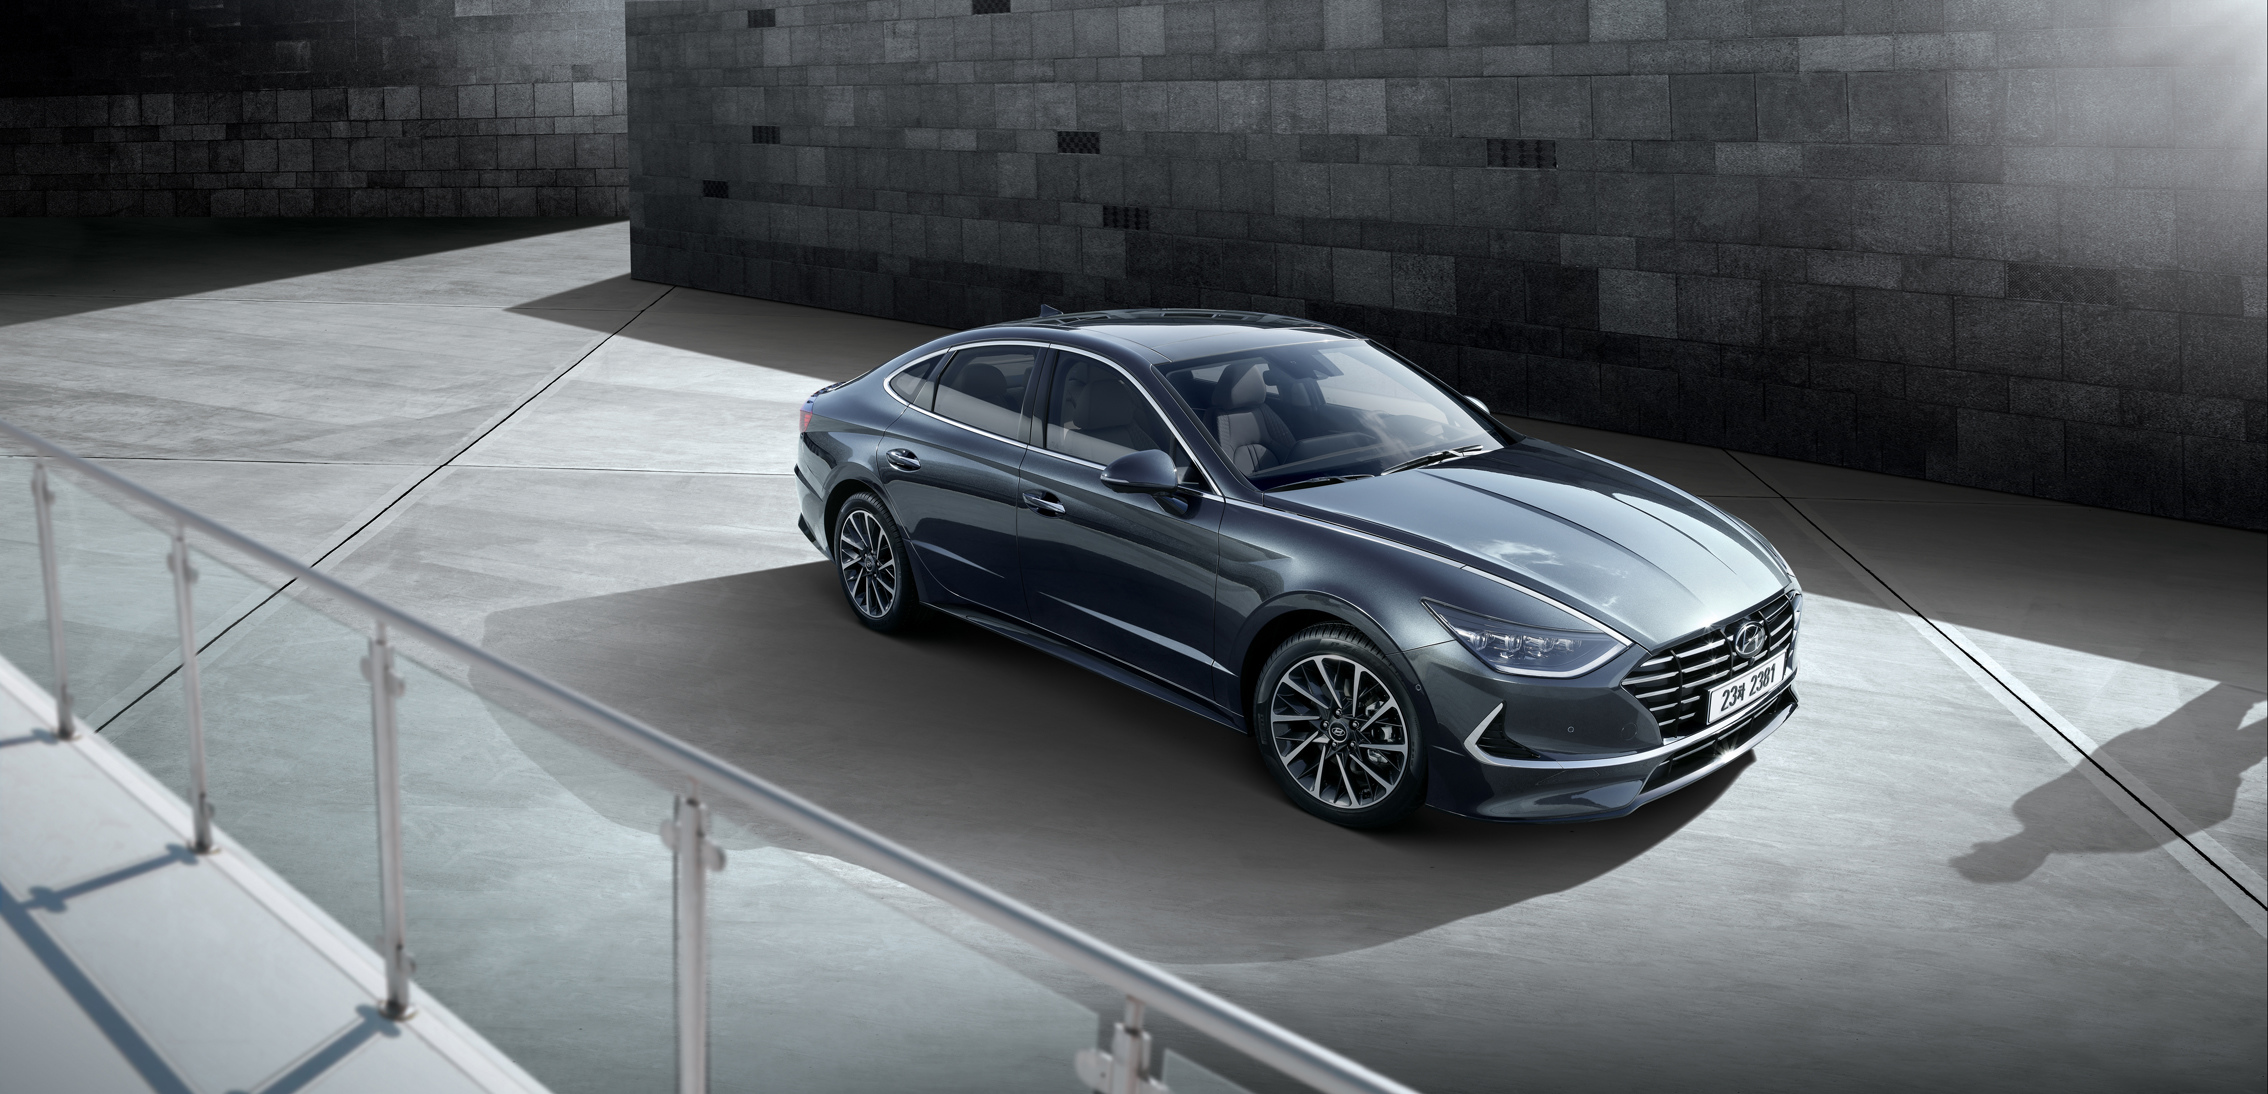 Hyundai Motor Shares First Glimpse of All-New Sonata_Additional Press Photo1.jpg